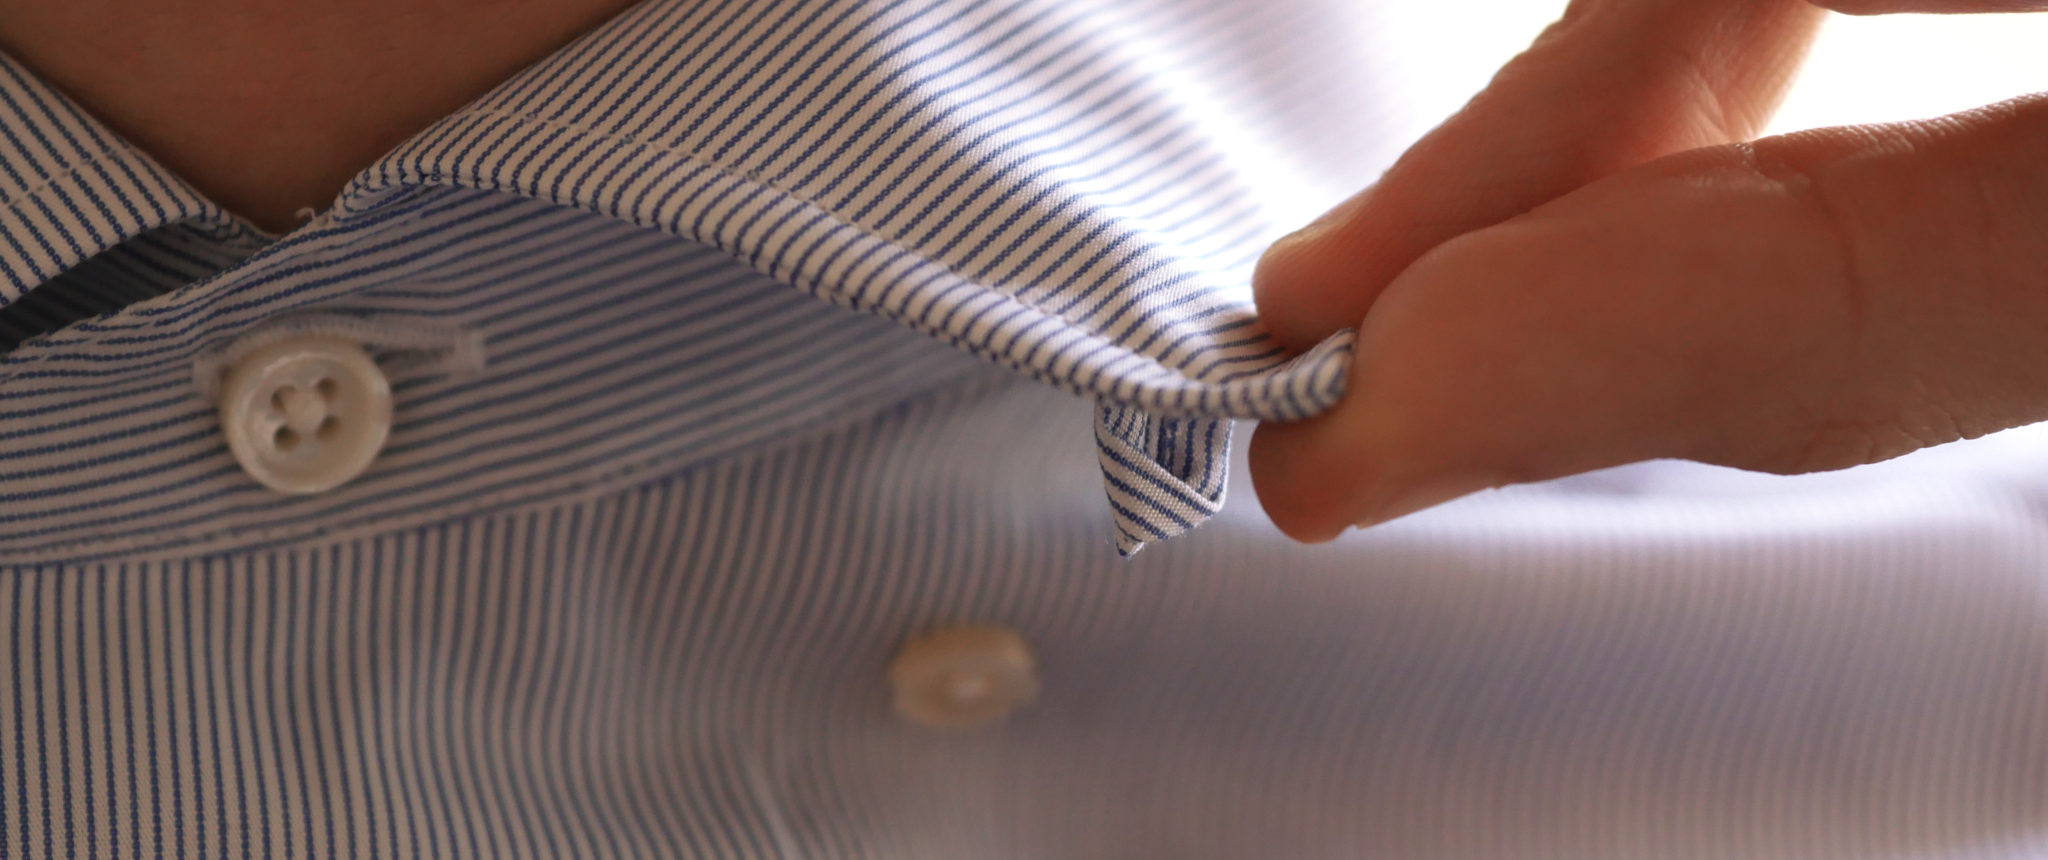 BLOG-MODE-HOMME-STRASBOURG-masculin-chemise-premiere-manche-maurice-style-4